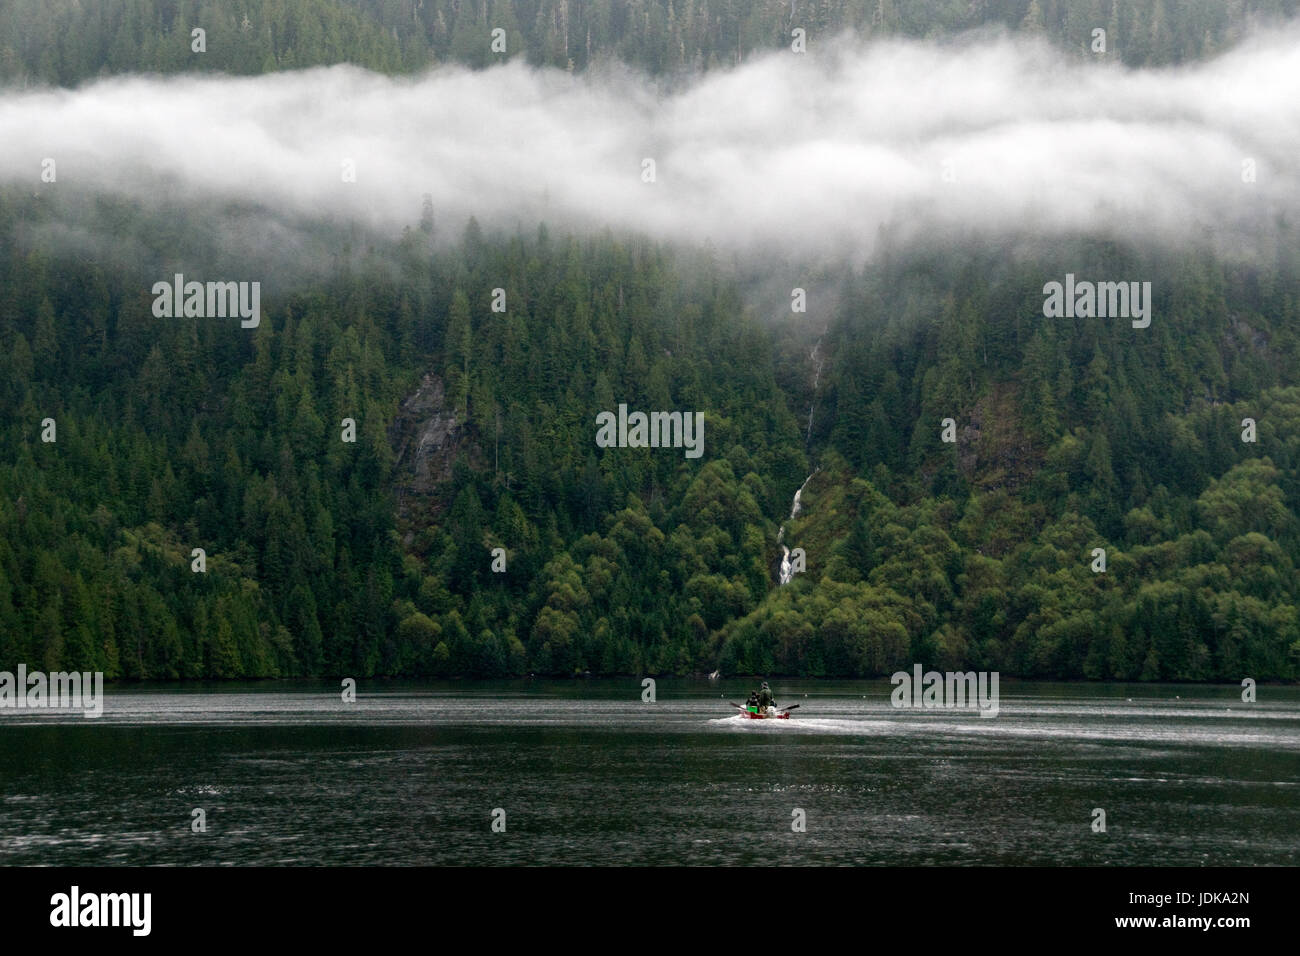 Tourists in a motorboat taking part in a bear viewing ecotour in the Great Bear Rainforest, British Columbia, Canada. - Stock Image